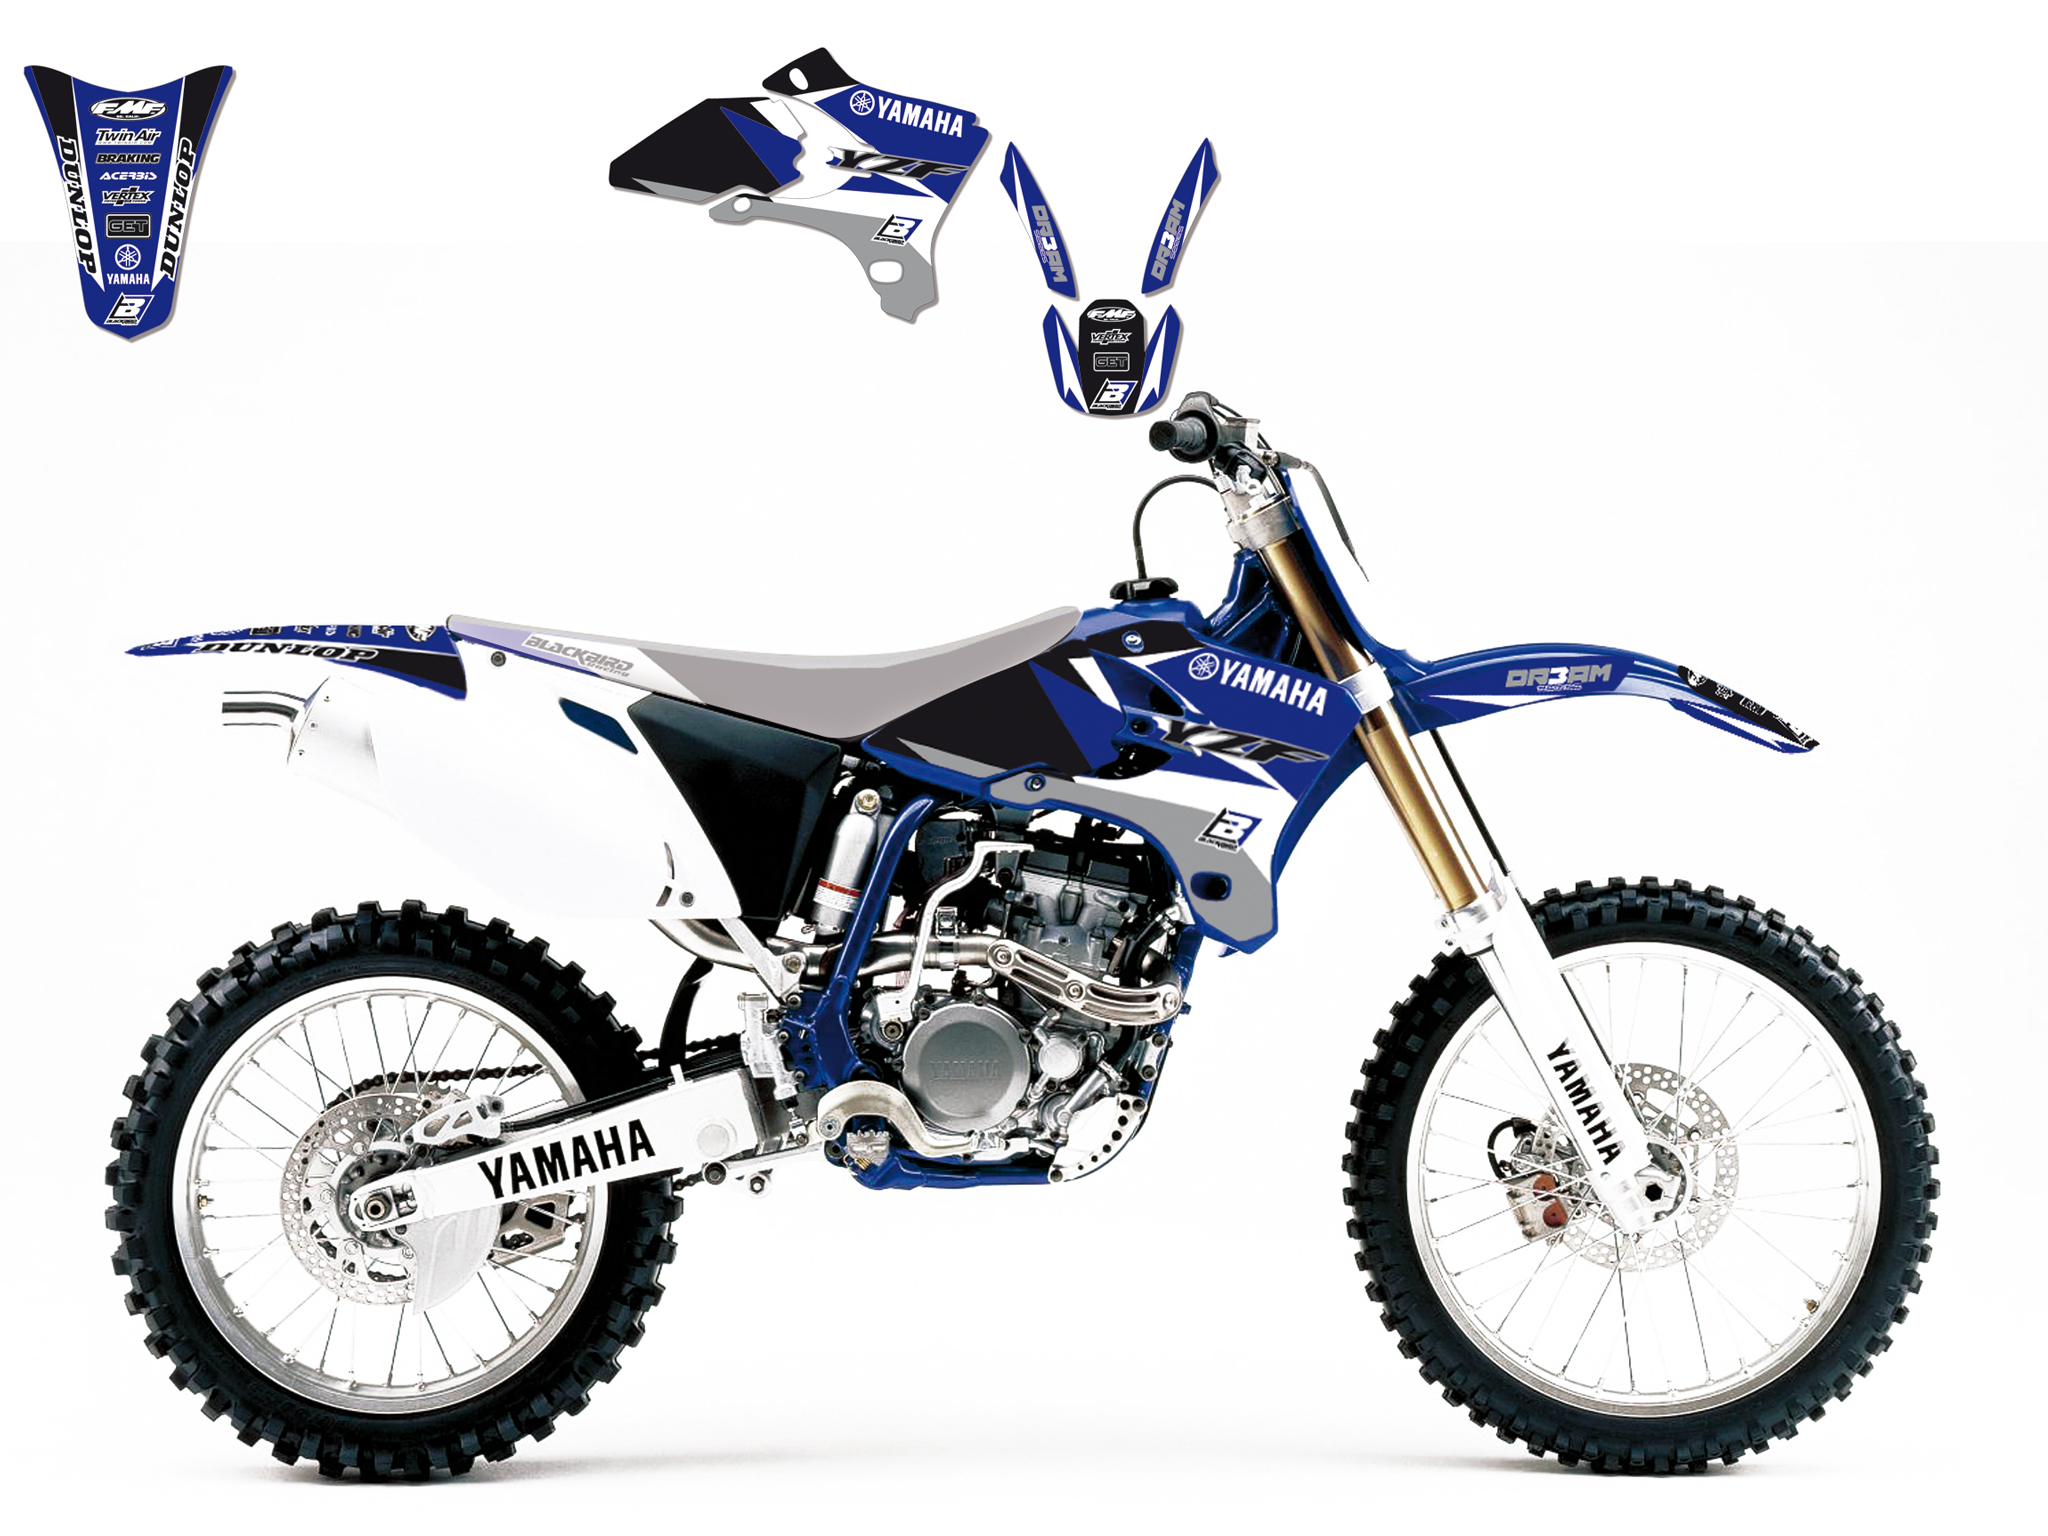 2007 Yzf 450 Graphics Related